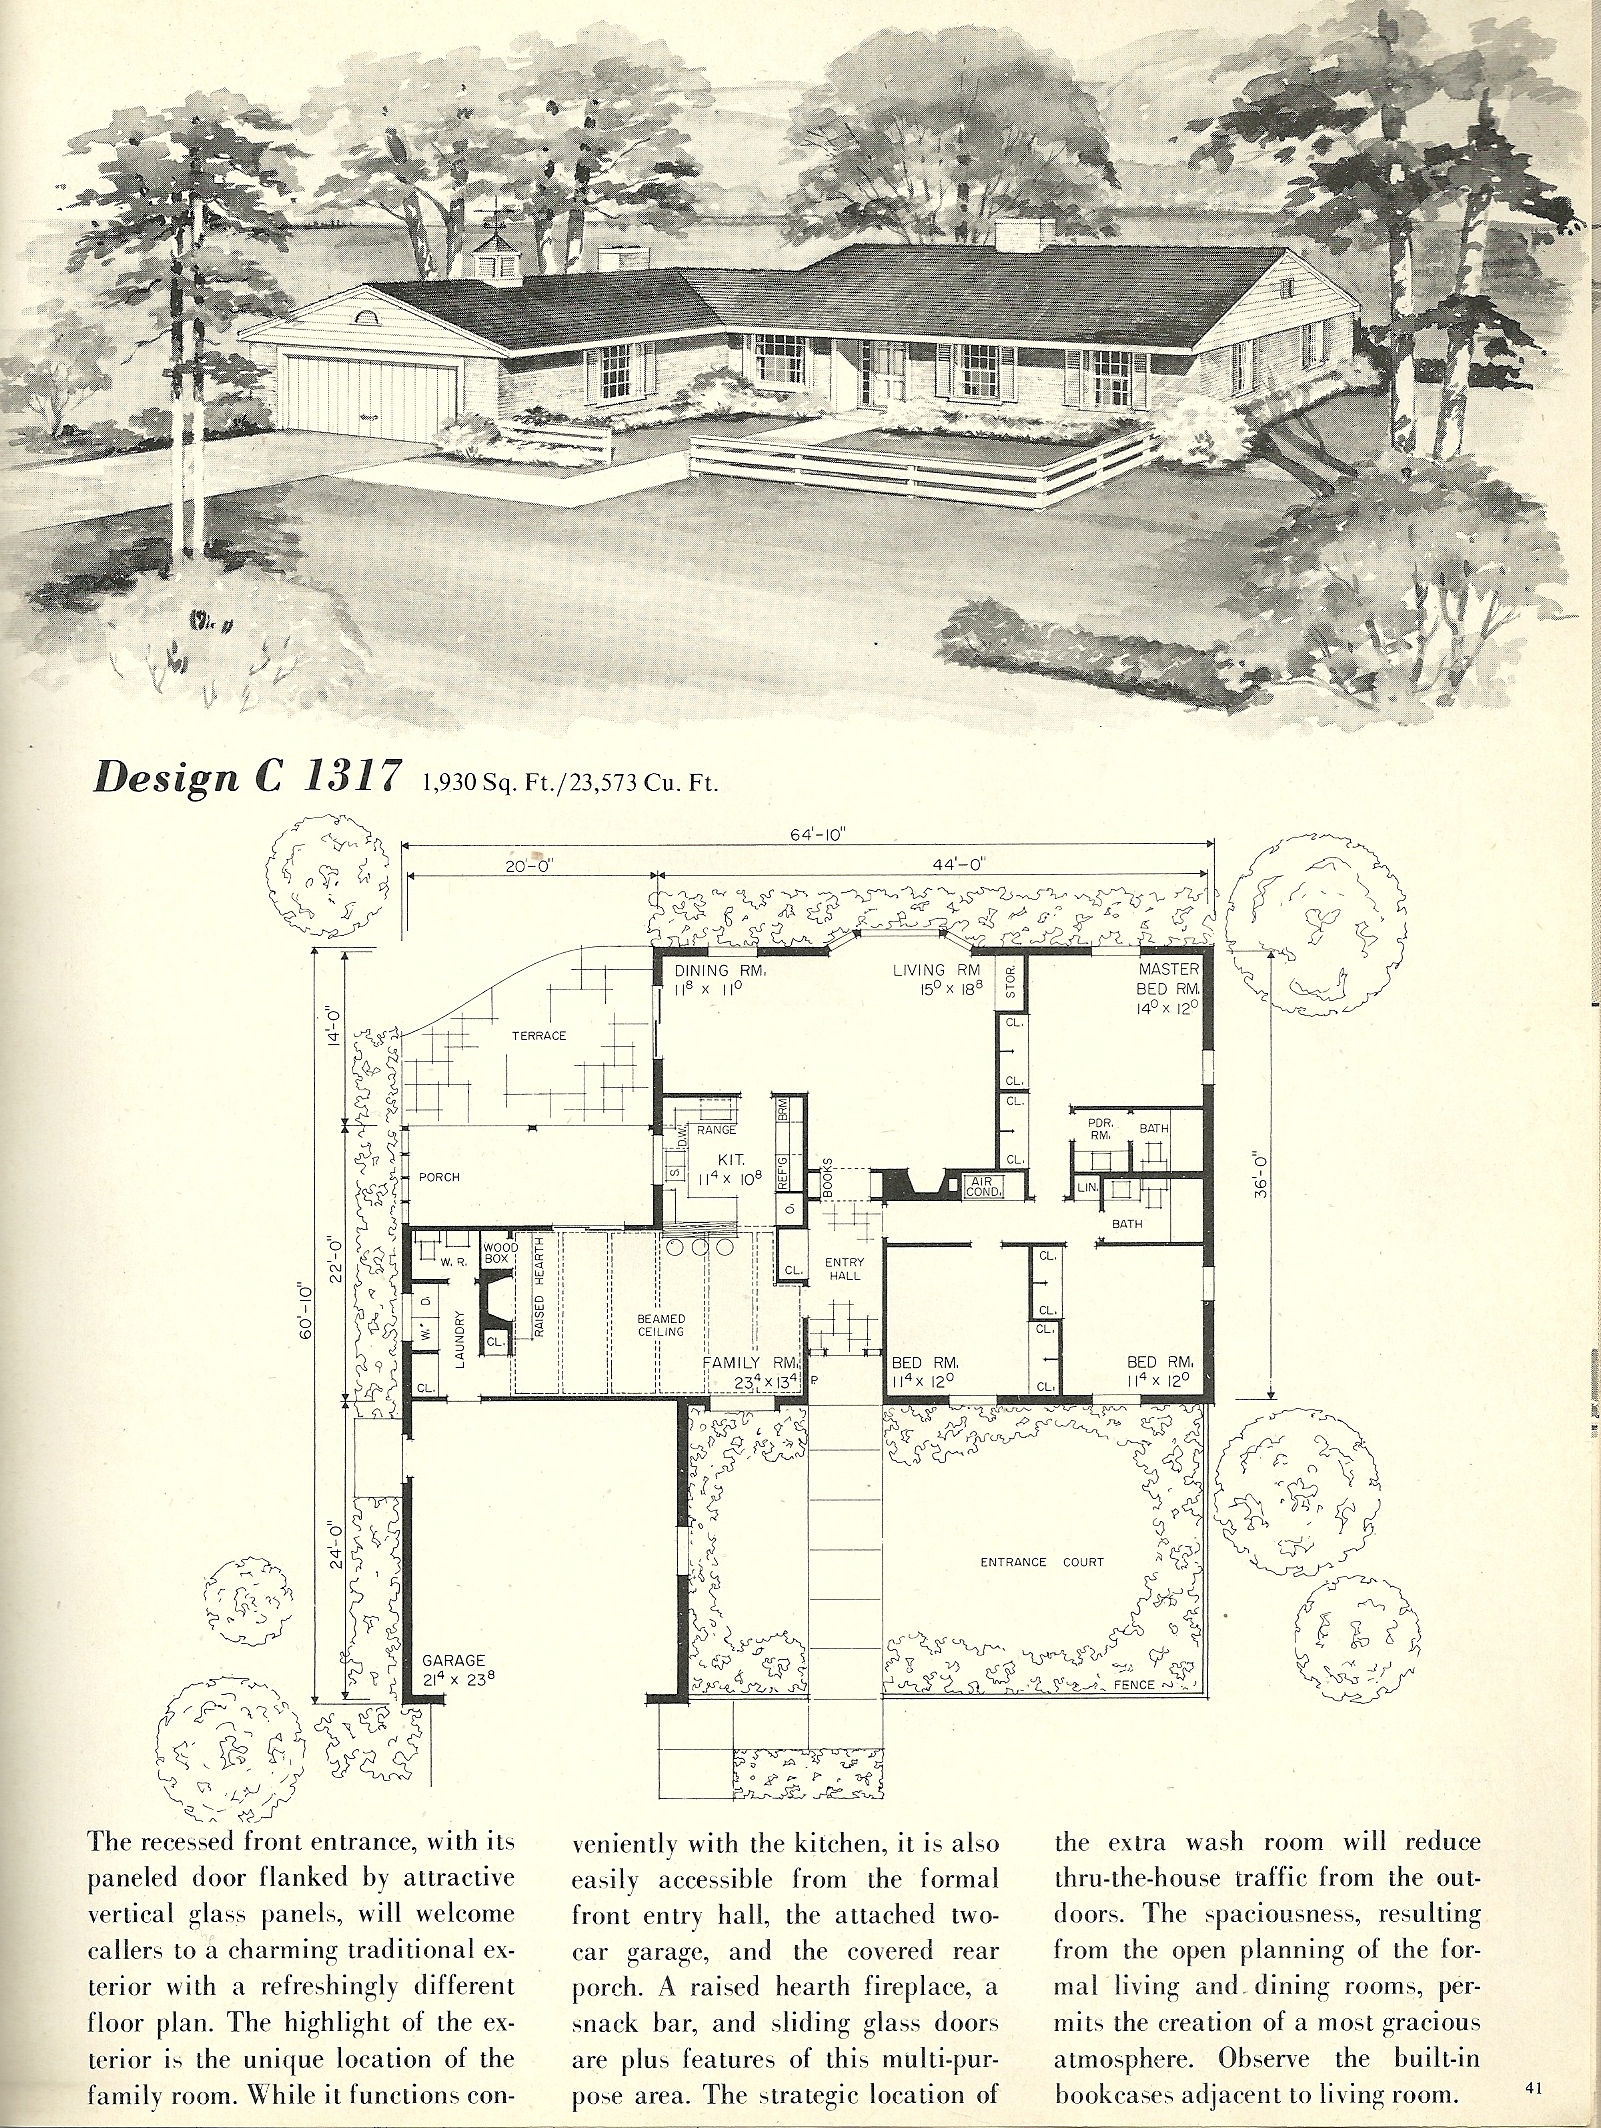 Vintage House Plans 1317 Antique Alter Ego